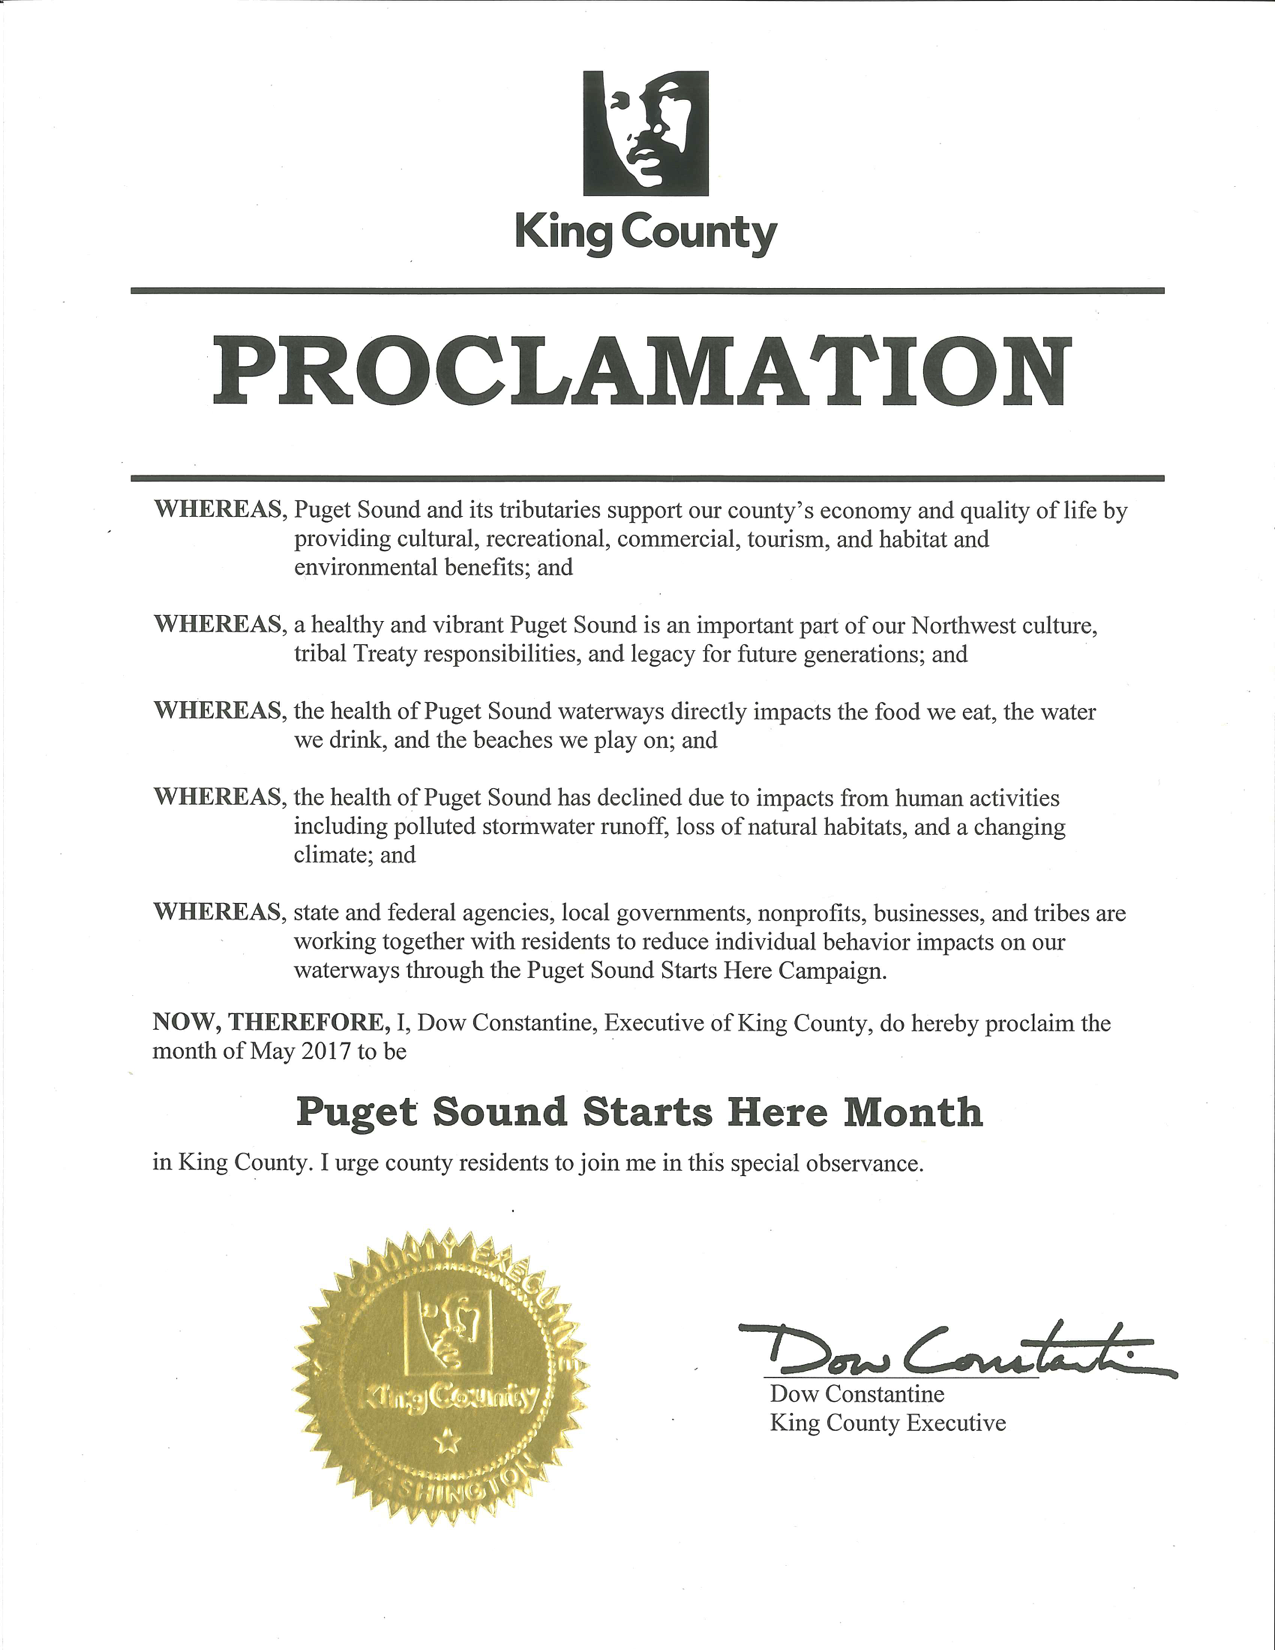 King County Proclamation - Puget Sound Starts Here Month